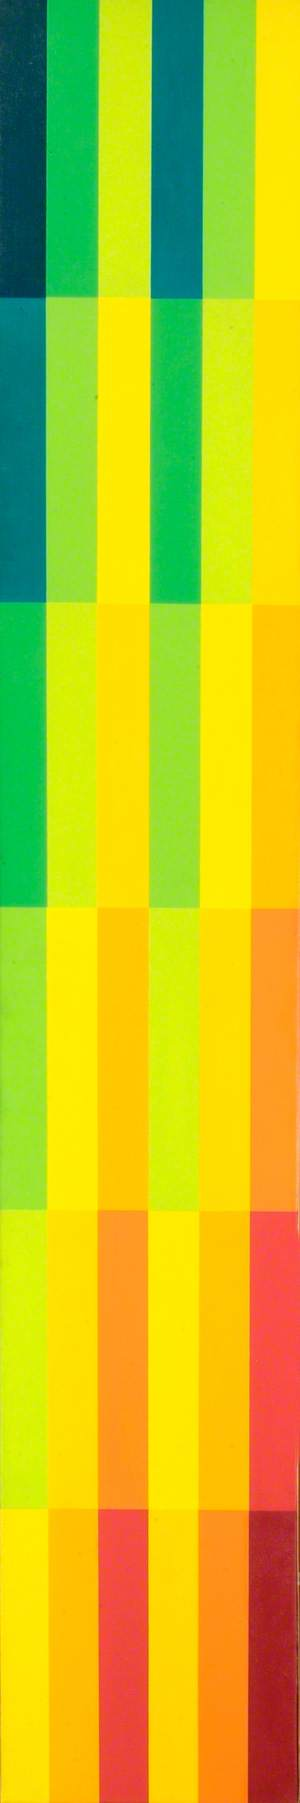 Six Systematic Colour Movements from Yellow to Yellow